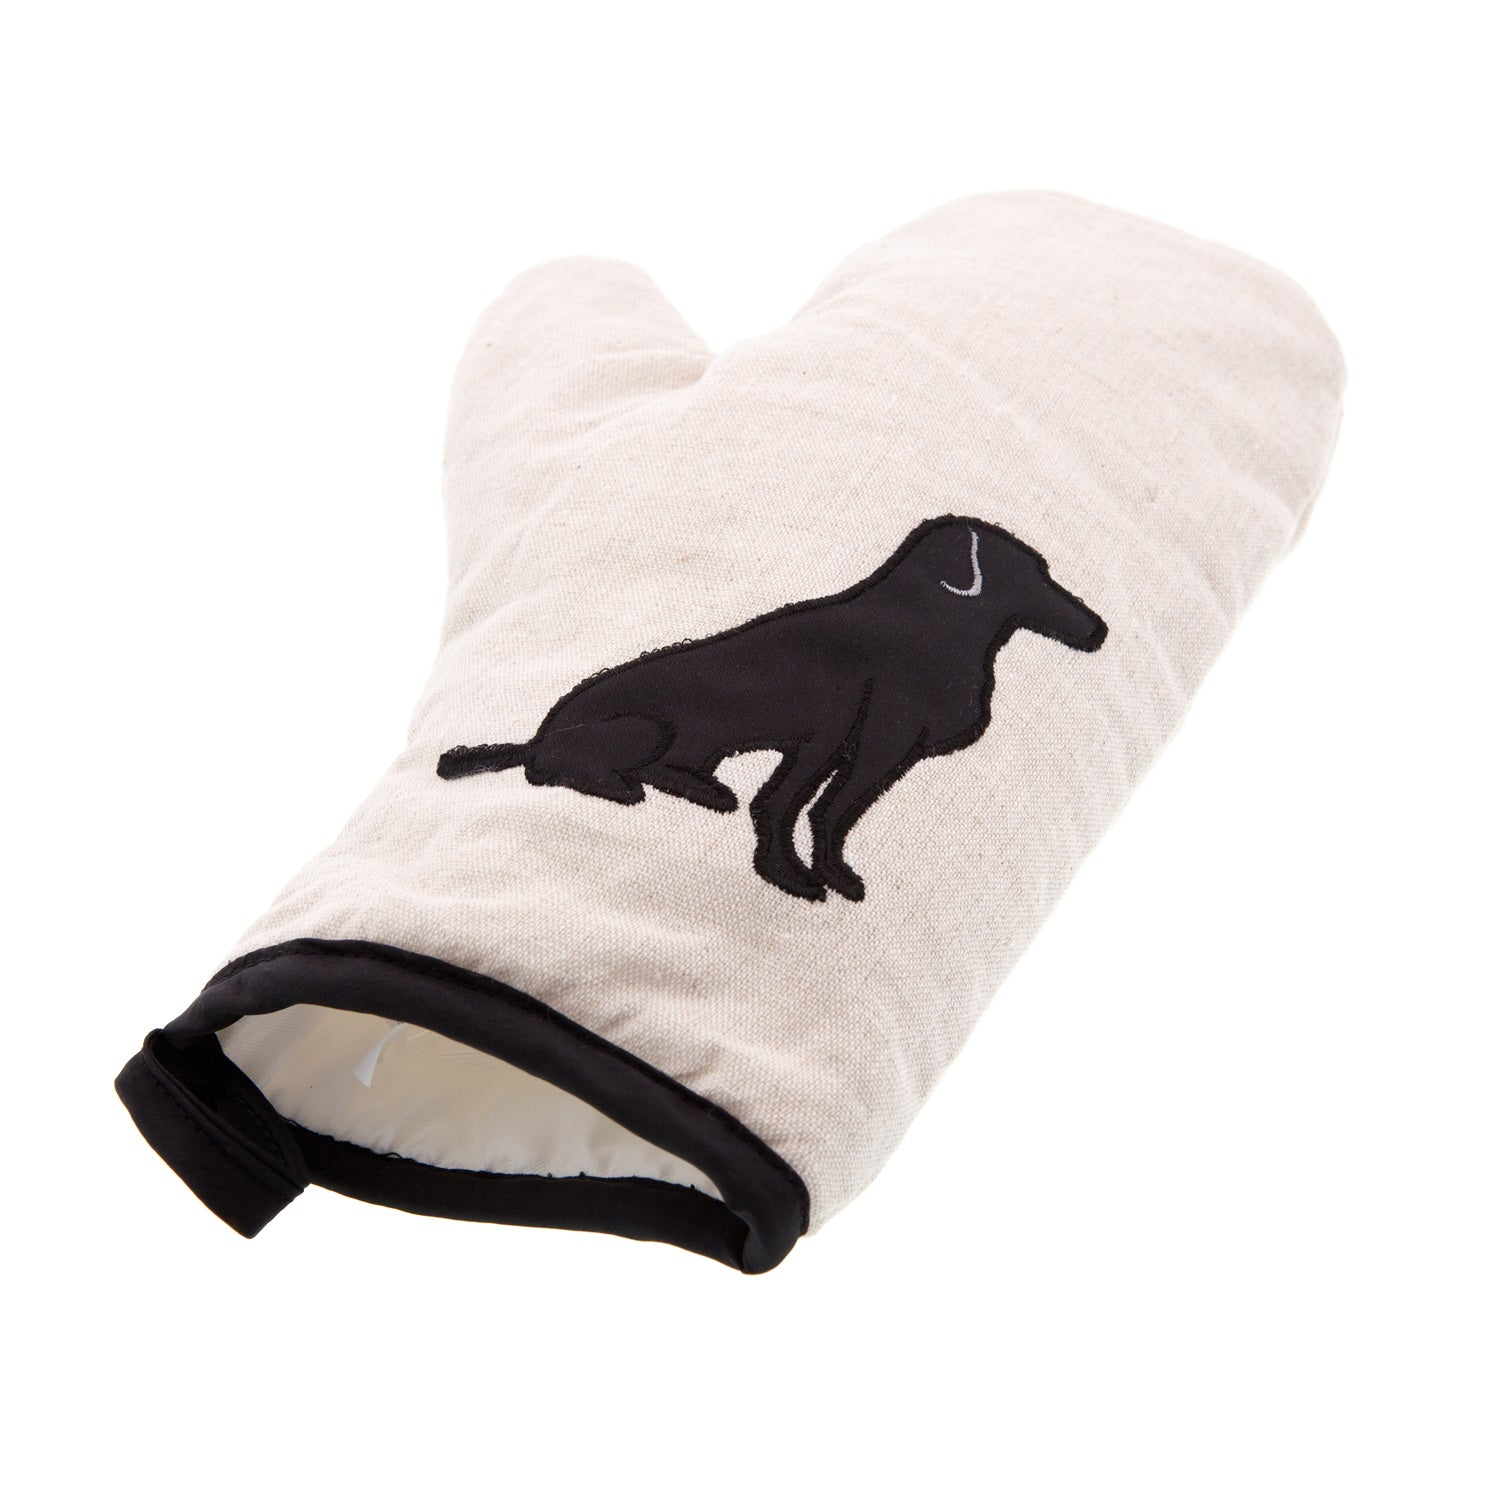 Dog Lover Gifts available at Dog Krazy Gifts - Black Labrador motif on cream oven glove, part of the Black Dog range available from Dog Krazy Gifts